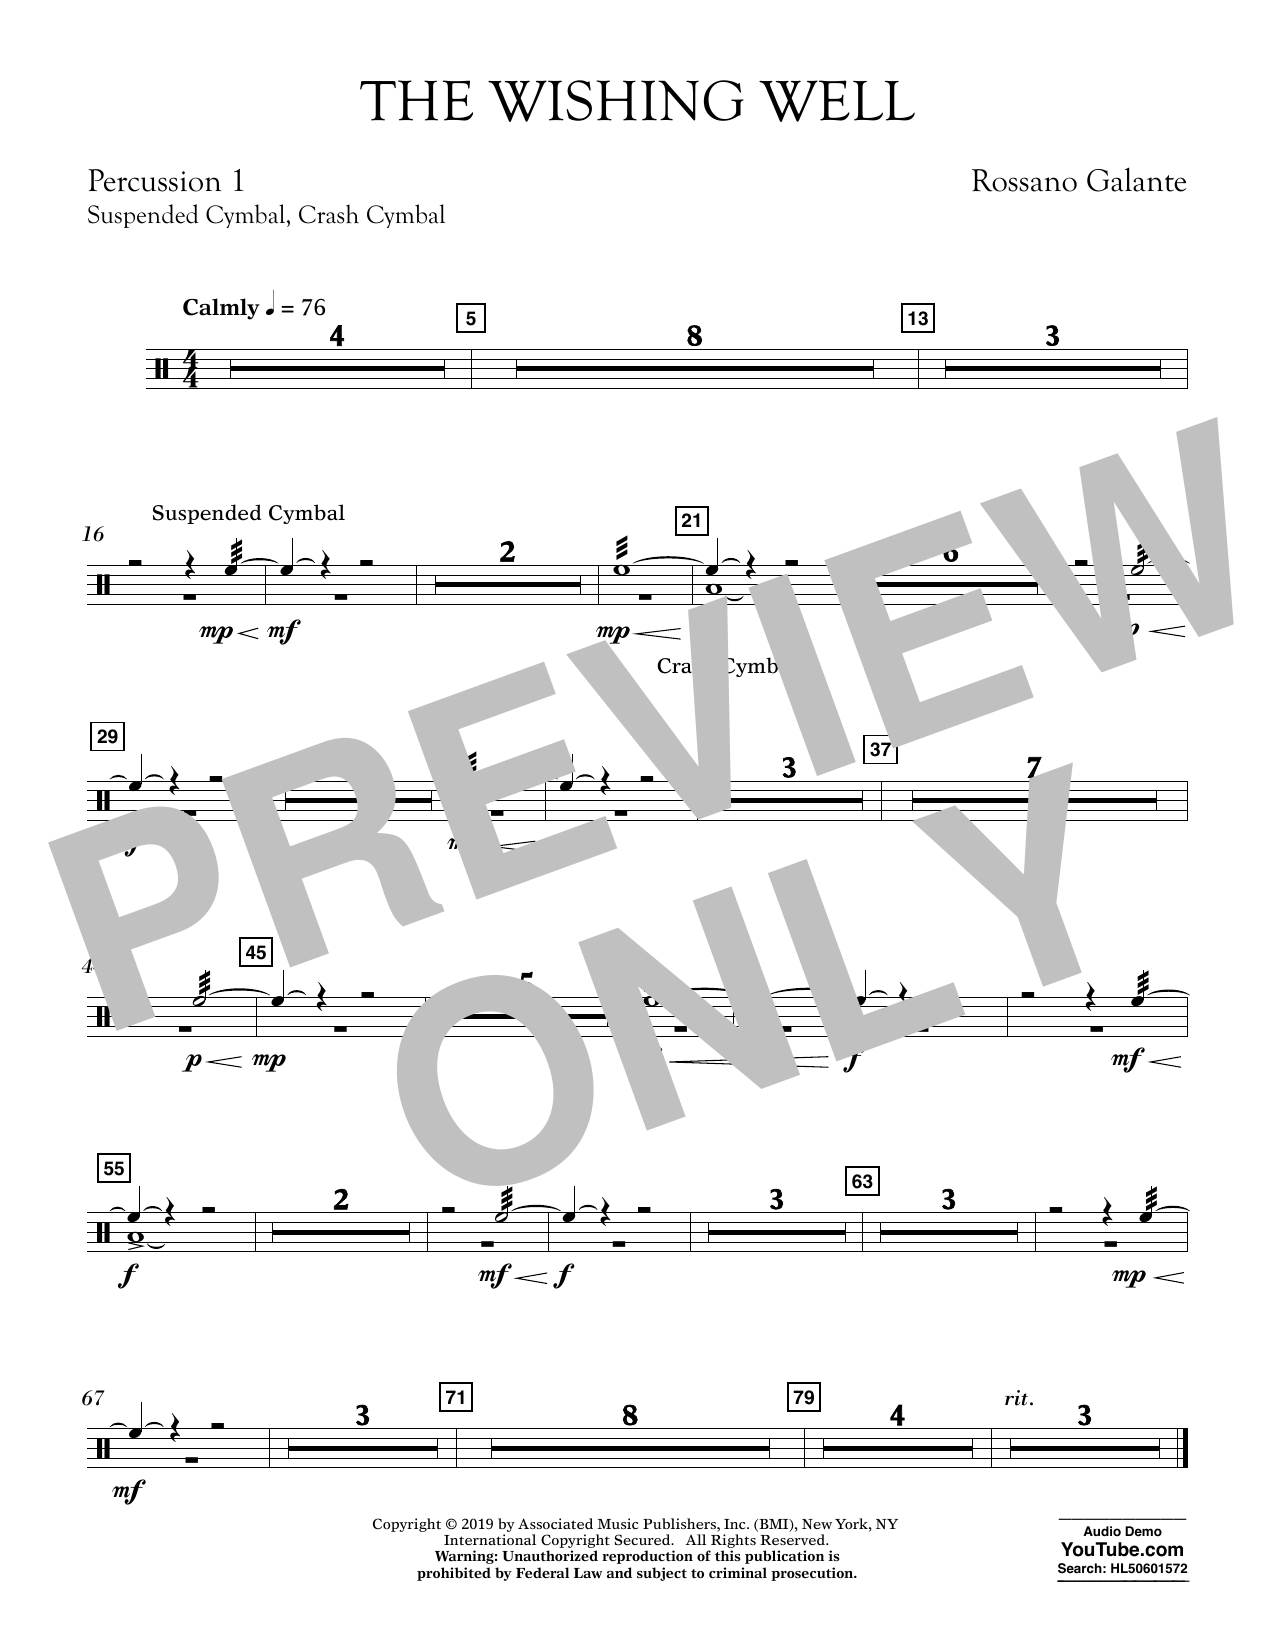 Rossano Galante The Wishing Well - Percussion 1 sheet music preview music notes and score for Concert Band including 1 page(s)